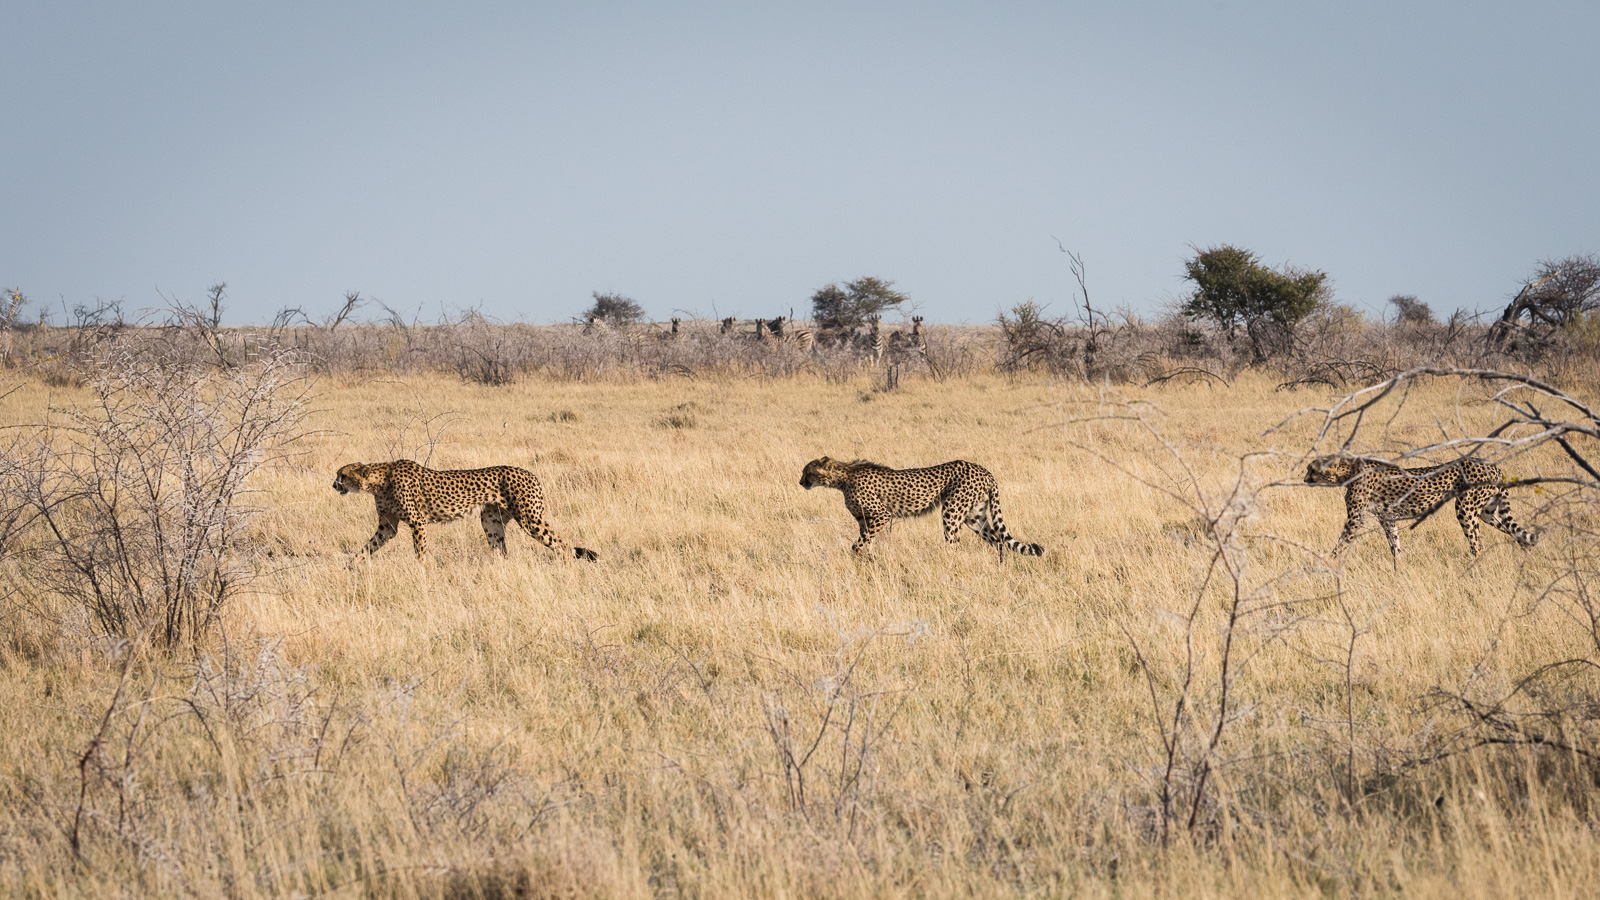 Zebra watch from safe distance as coalition of three male cheetahs leave after unsuccessful hunt